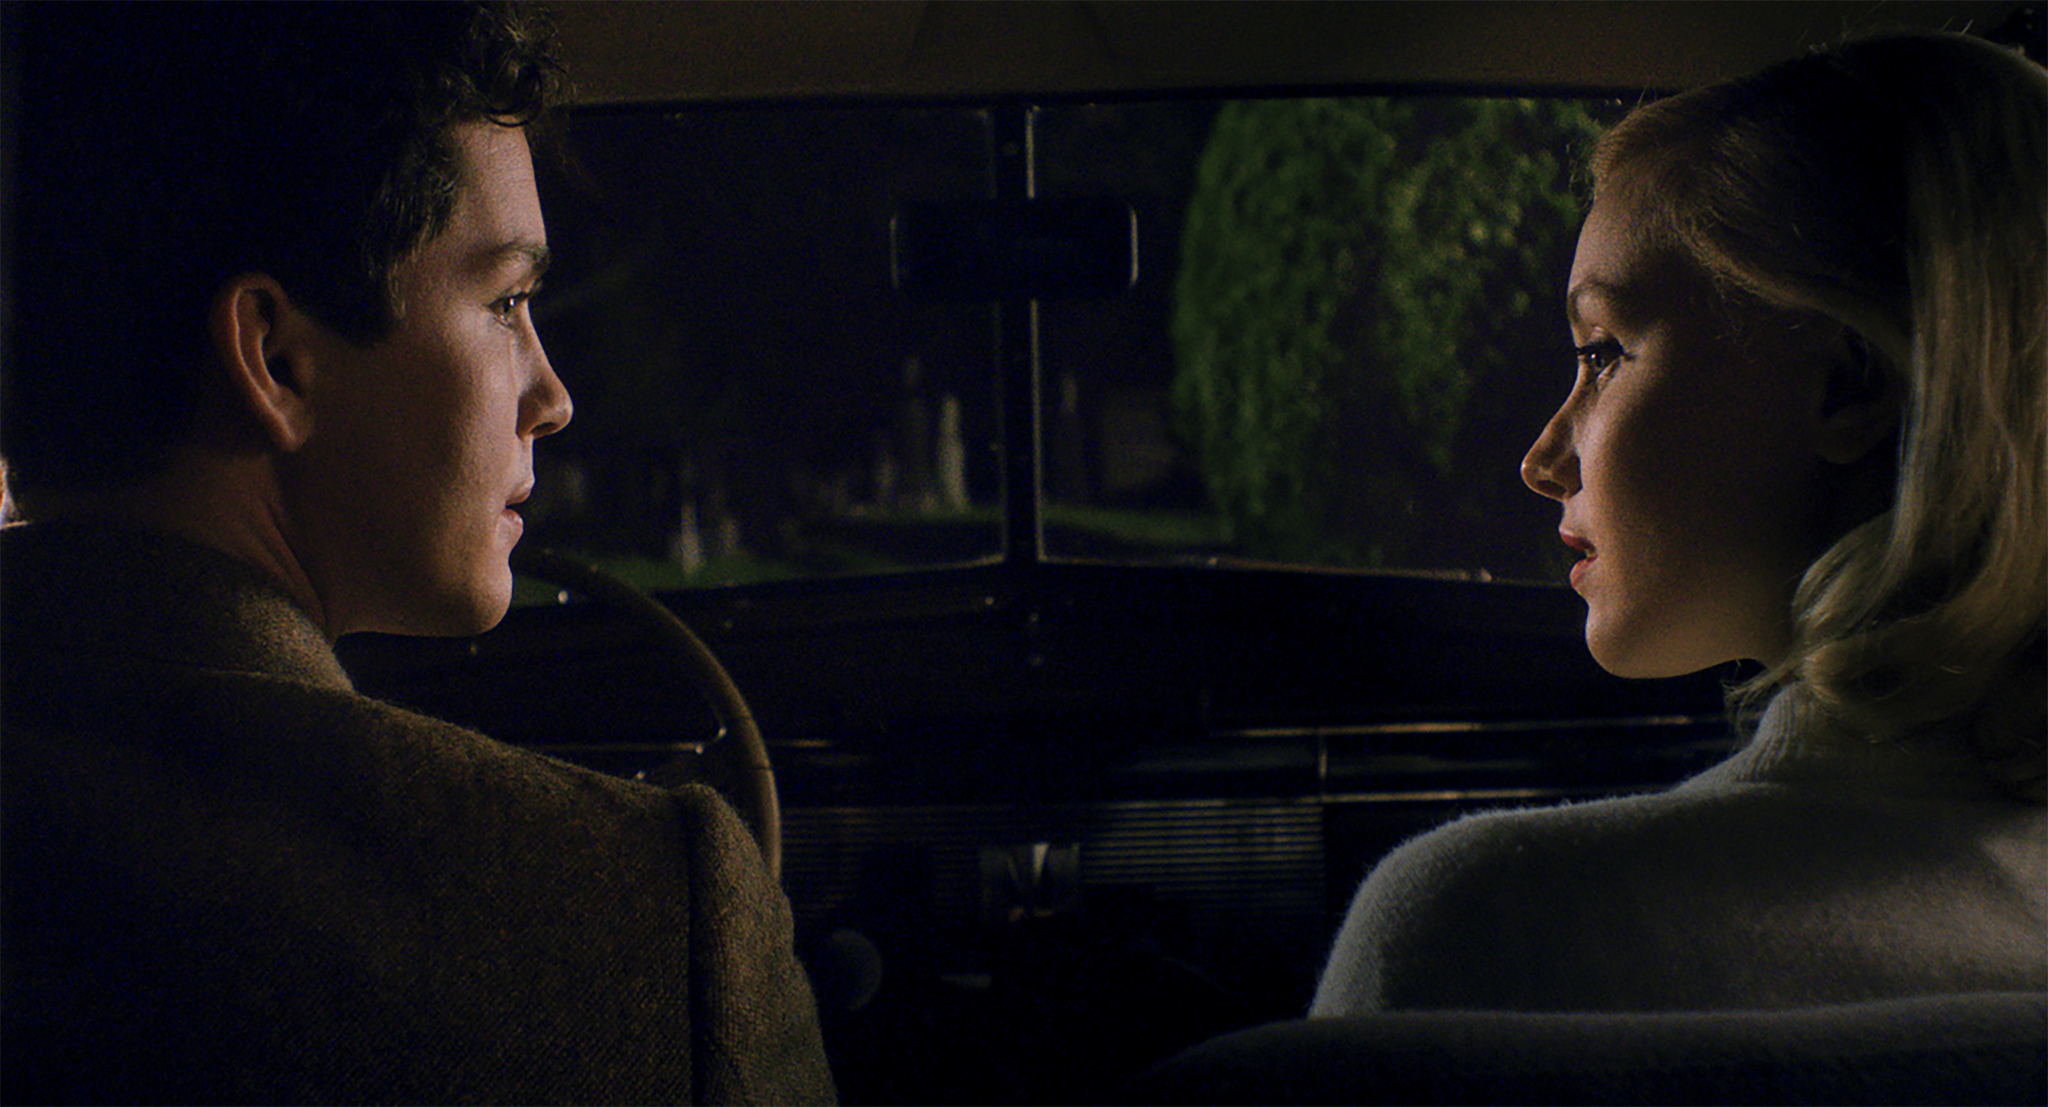 Sarah Gadon and Logan Lerman in Indignation (2016)